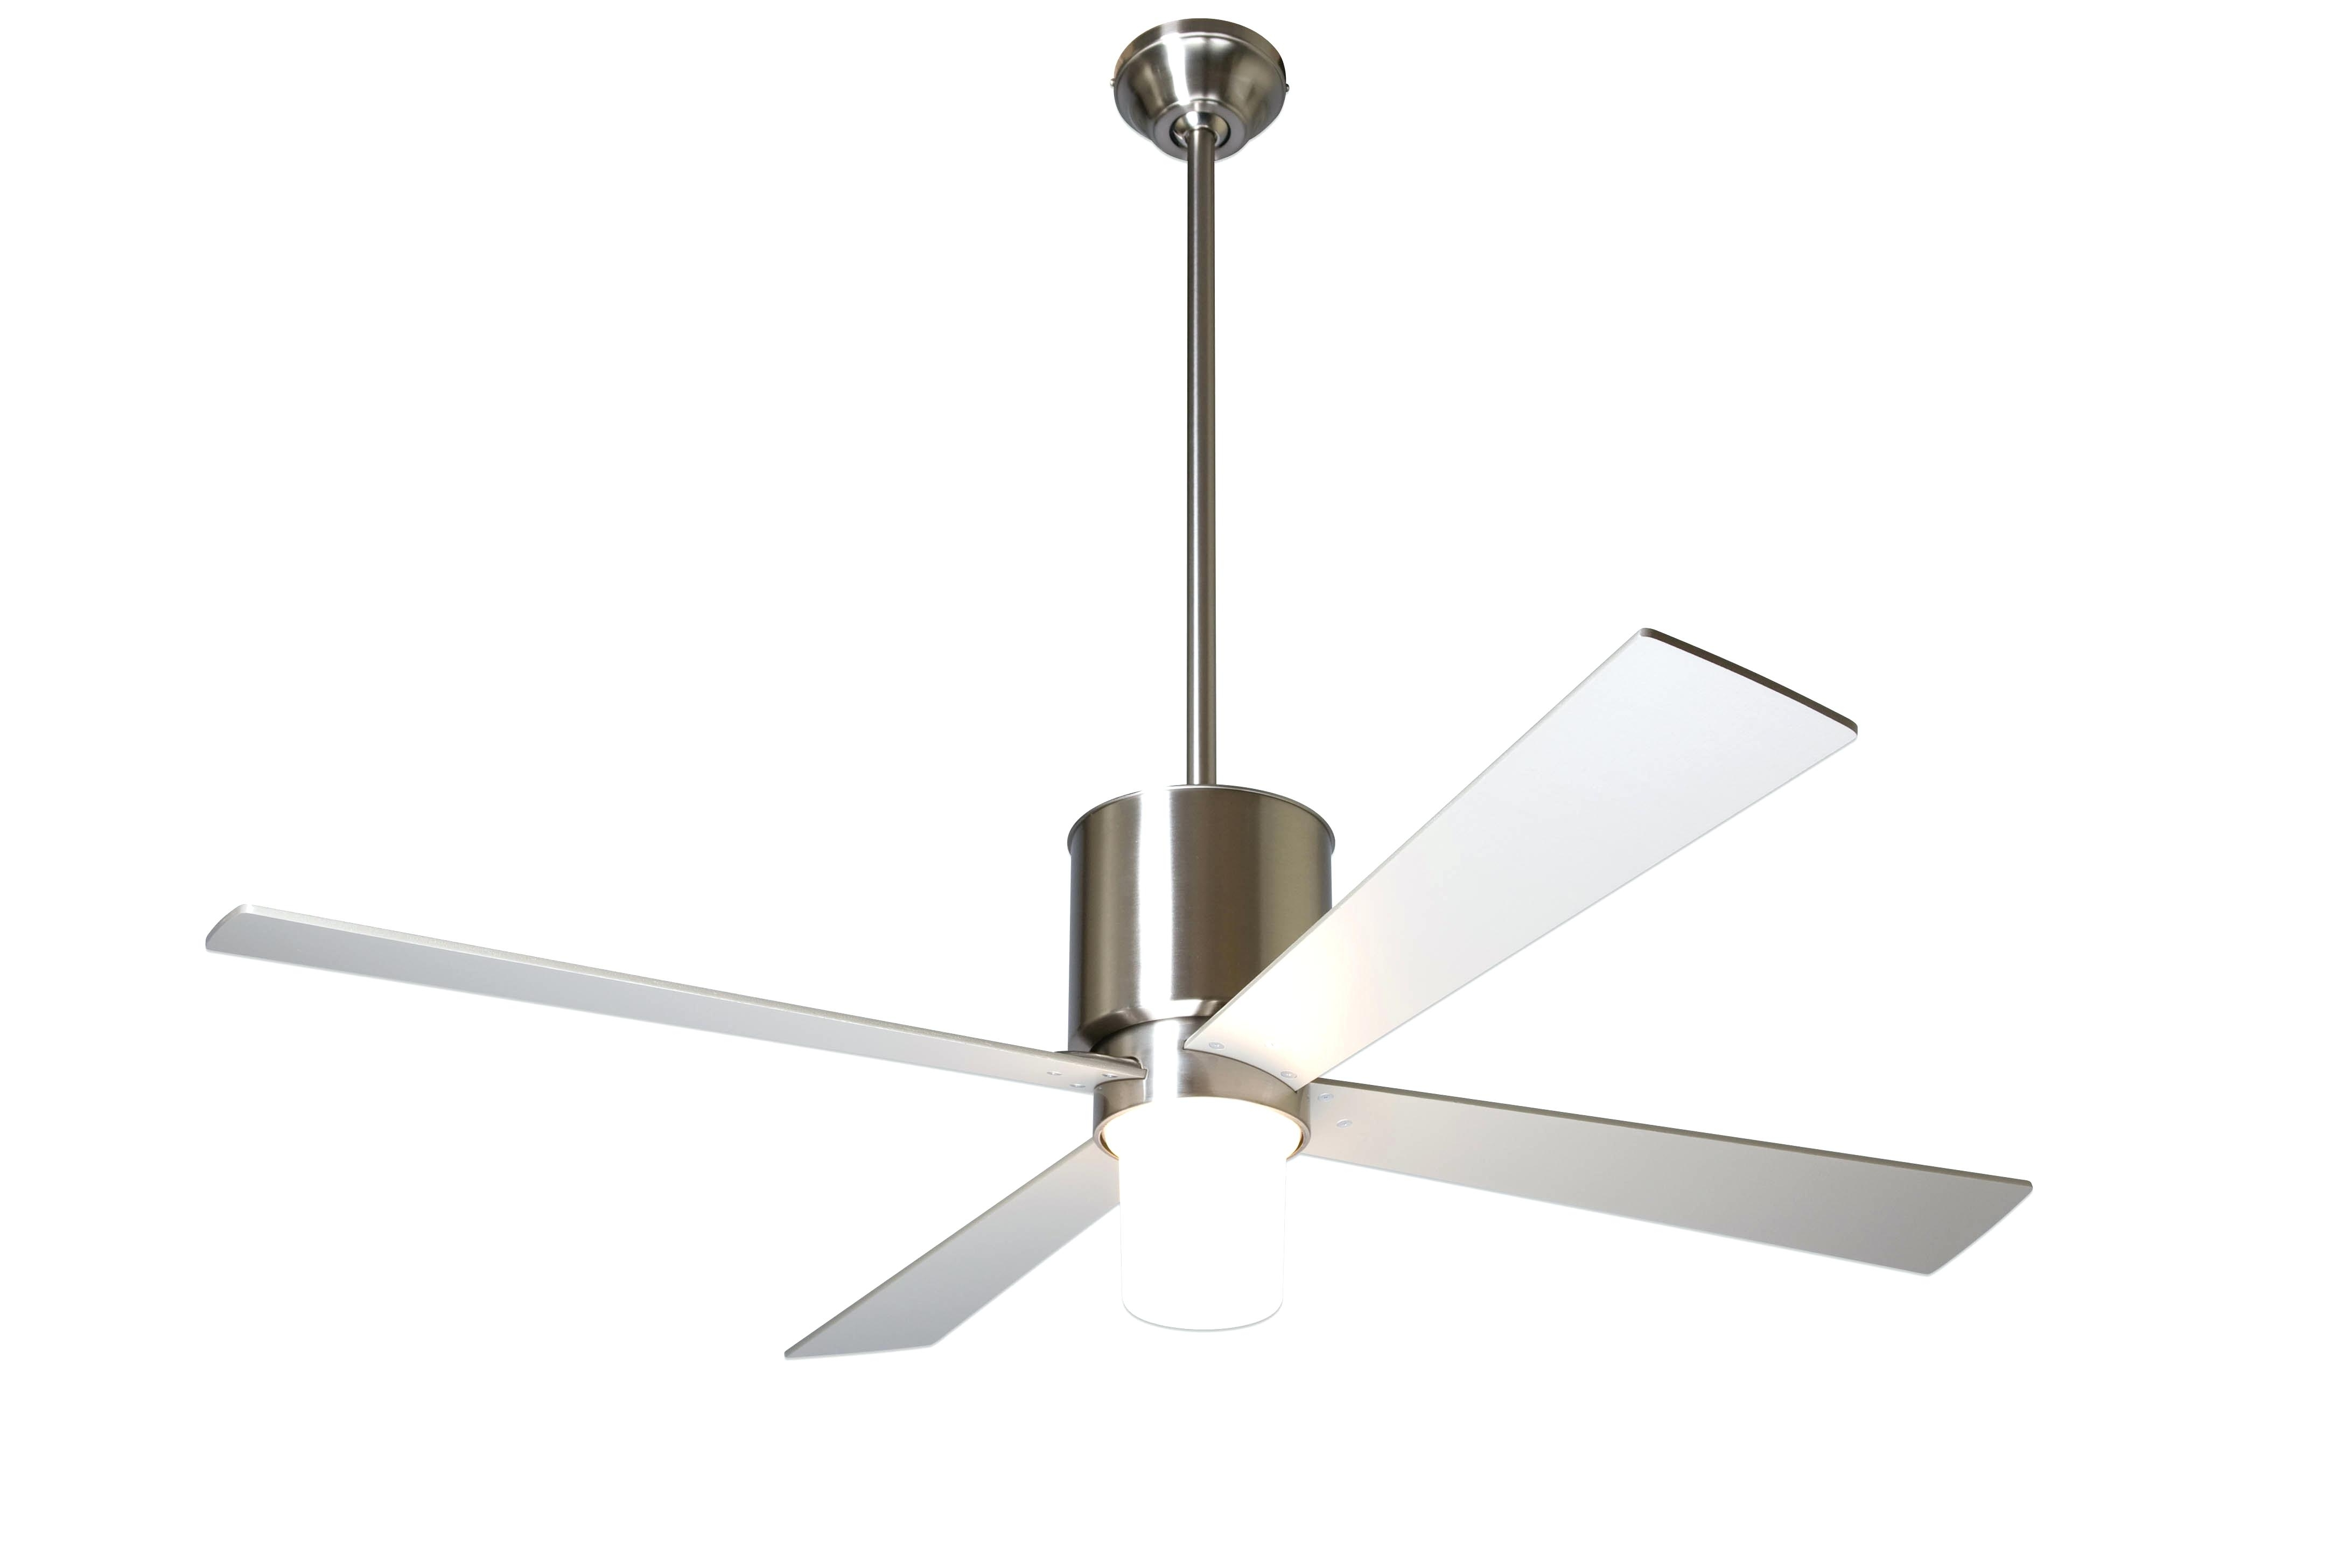 Outdoor Ceiling Fans With Bright Lights In Latest Ceiling Fans : Small Ceiling Fan With Bright X Light Fans Led Bulbs (View 4 of 20)